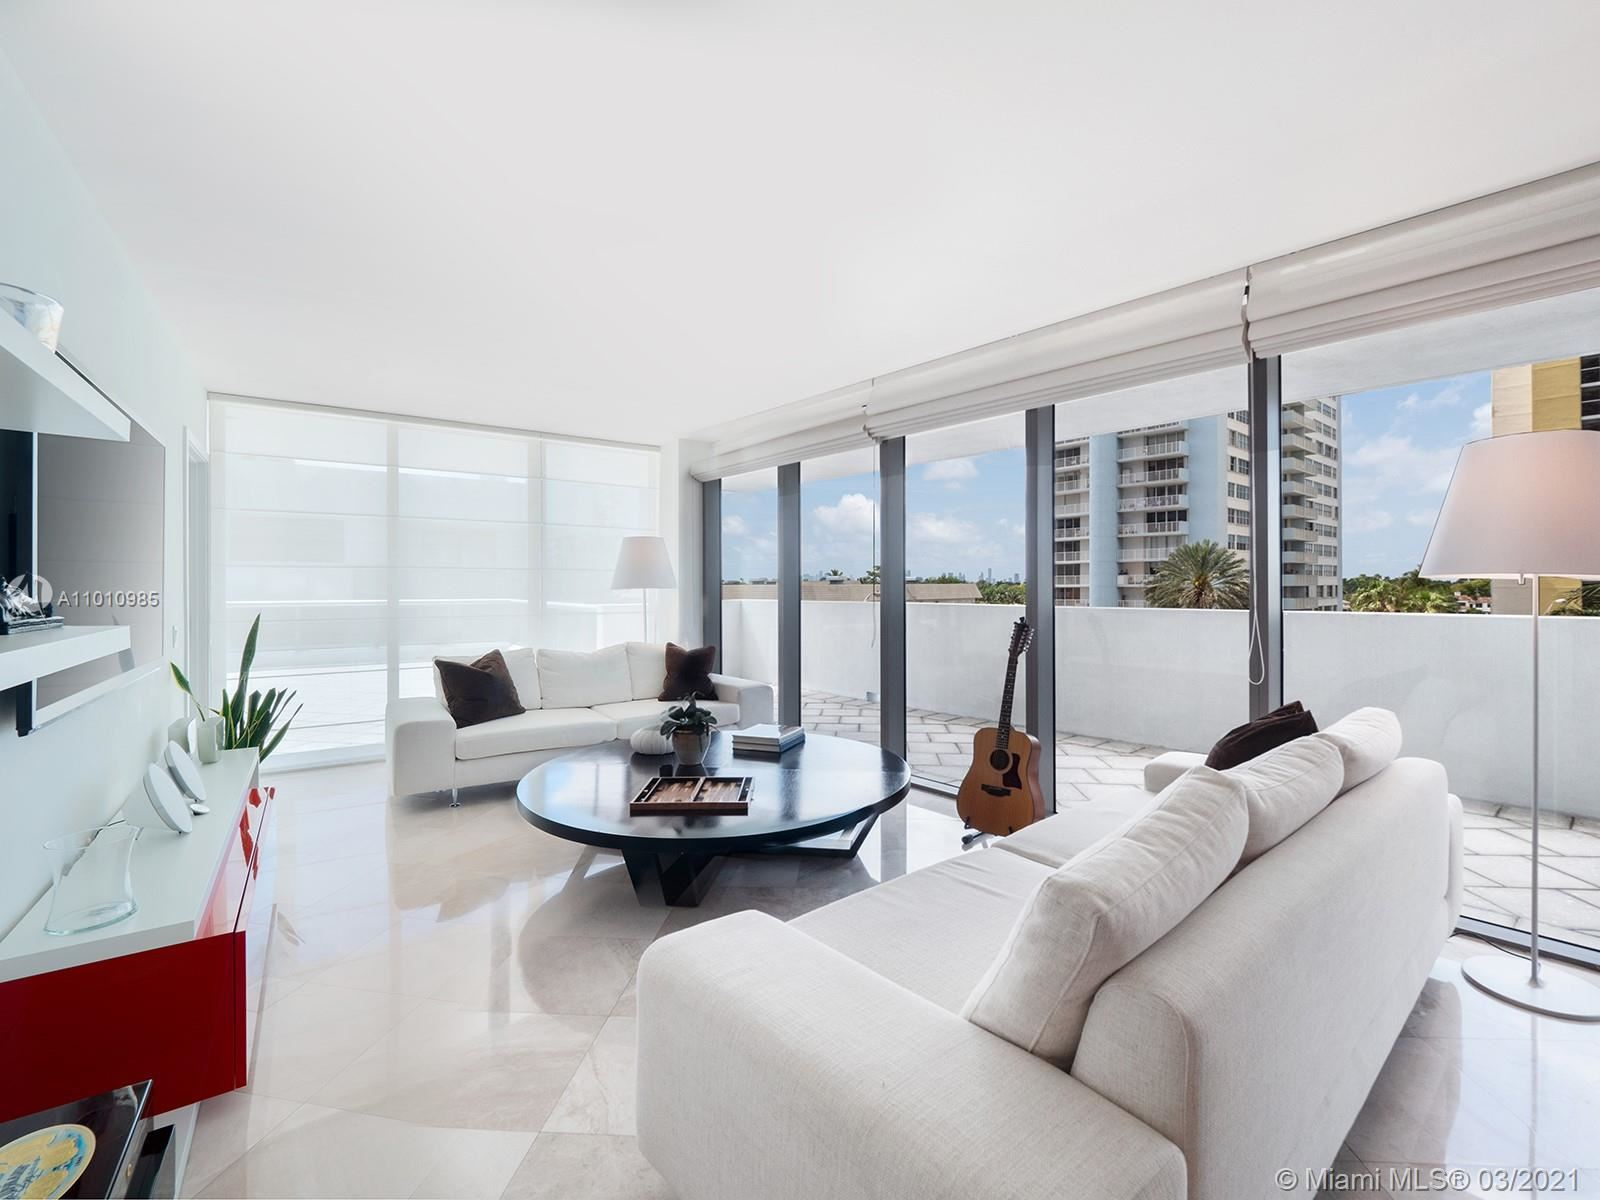 5875 Collins Ave #508, Miami Beach, FL 33140 - #: A11010985